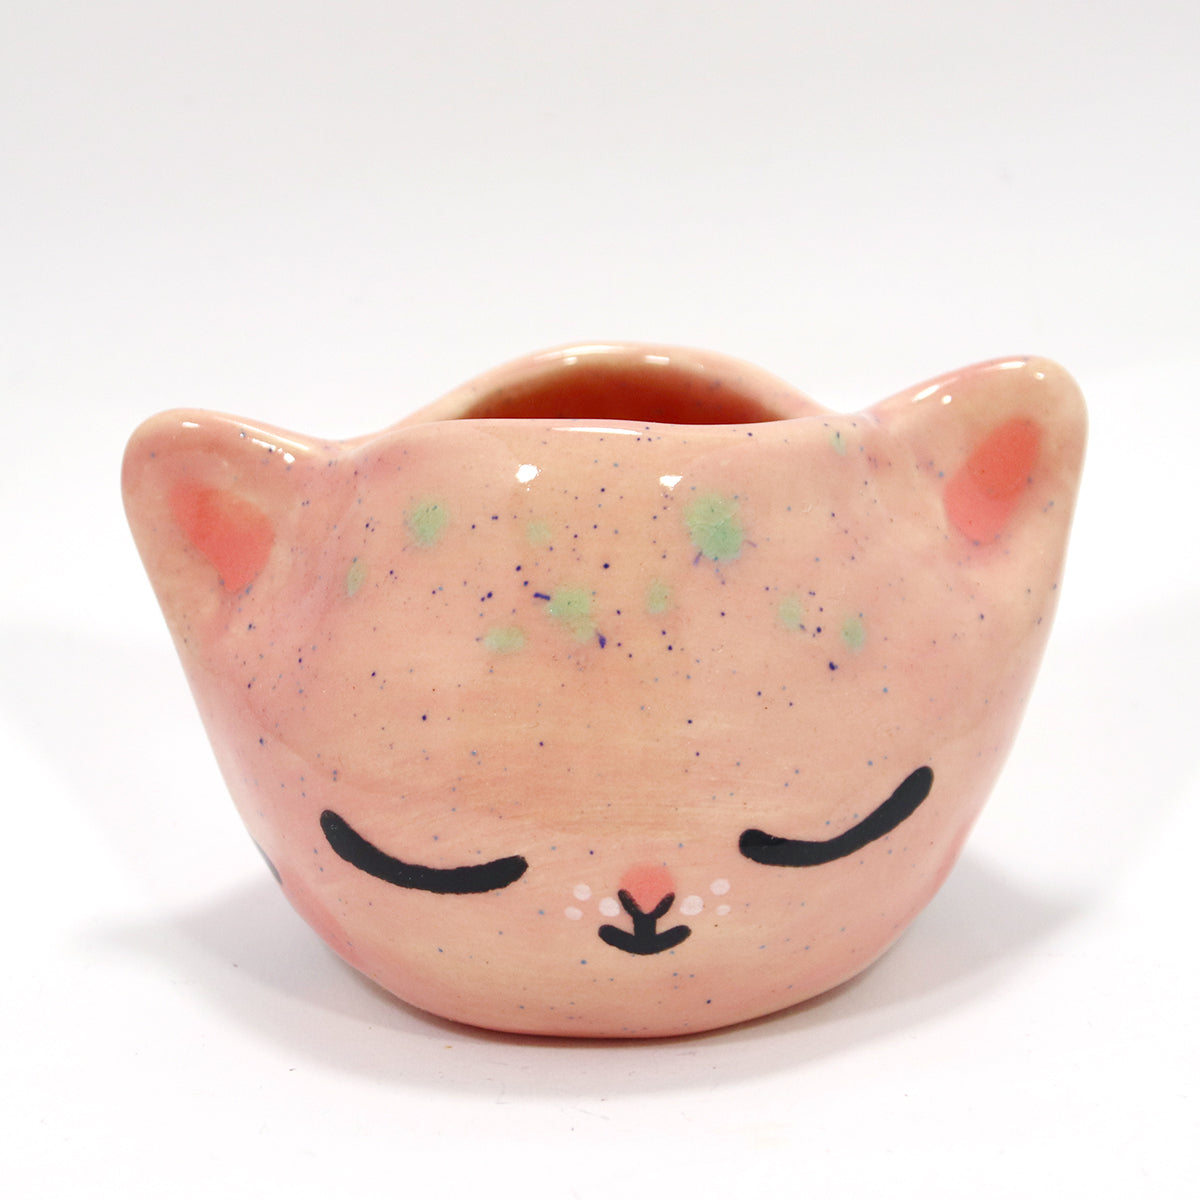 Ceramic Kitty Planter #1397 - XS